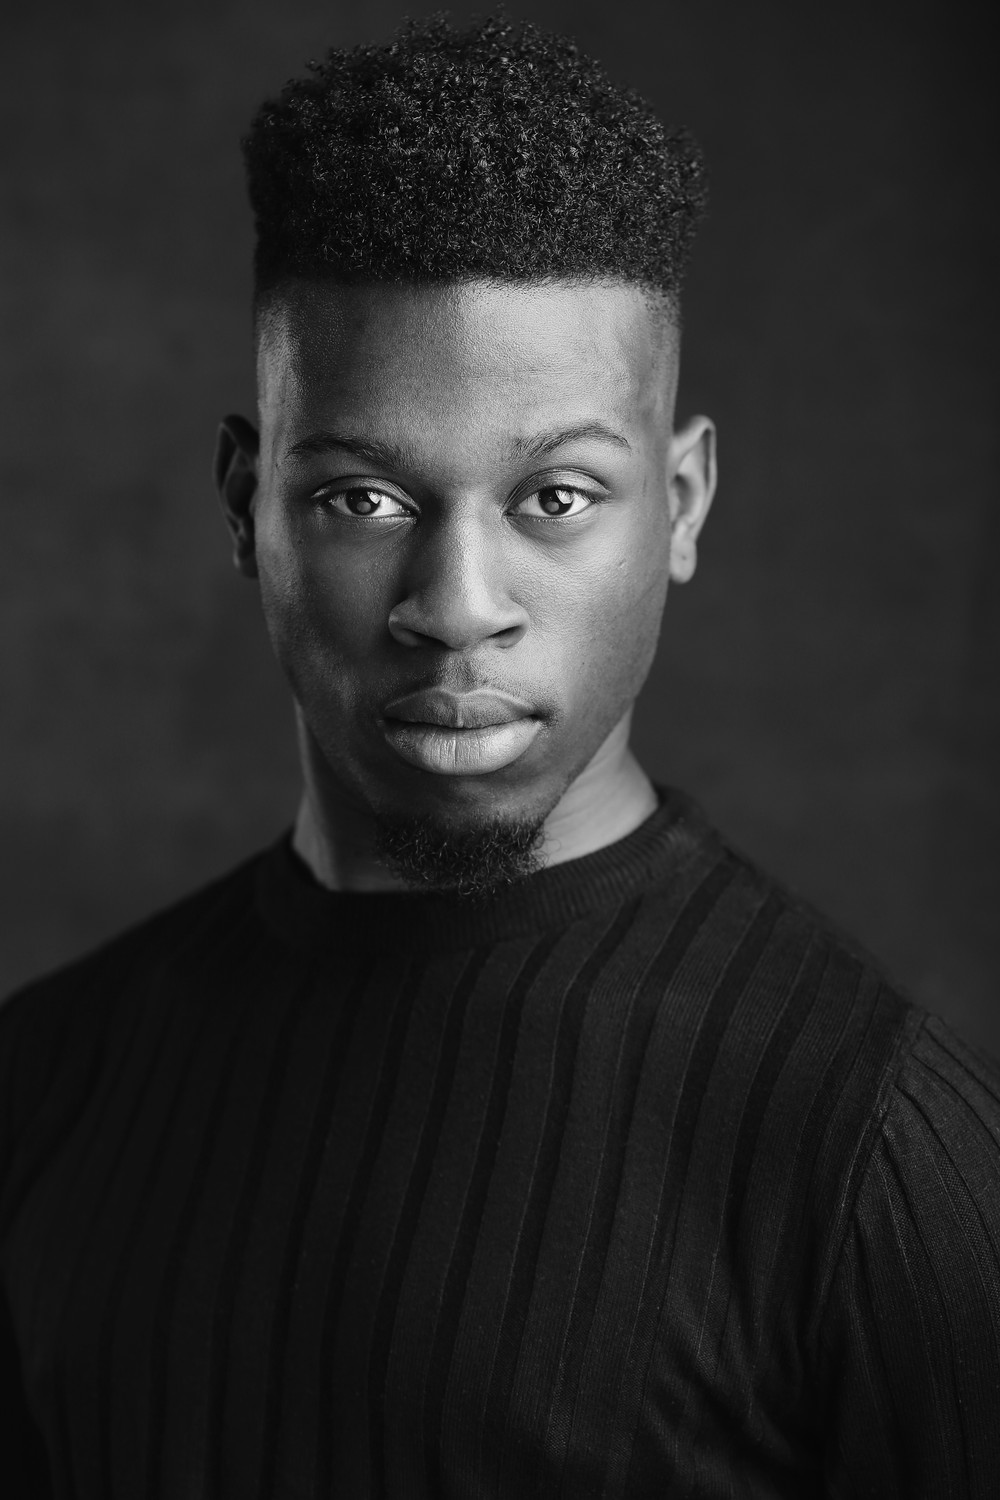 Lashane Williams Final Year Student at The Urdang Academy